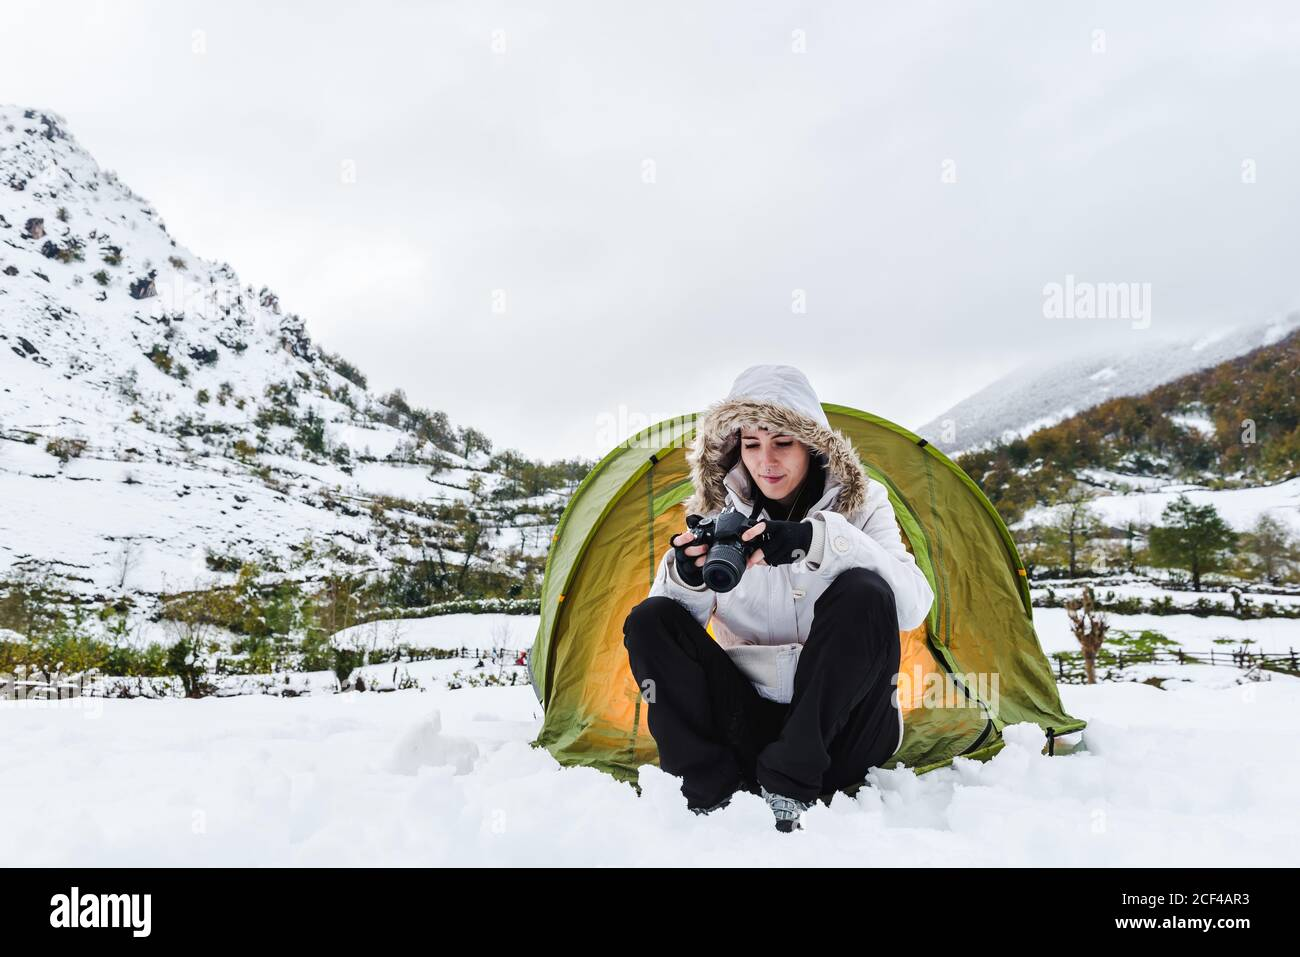 Content female in white winter jacket and black pants sitting with camera near light green tourist tent on snow in mountains Stock Photo